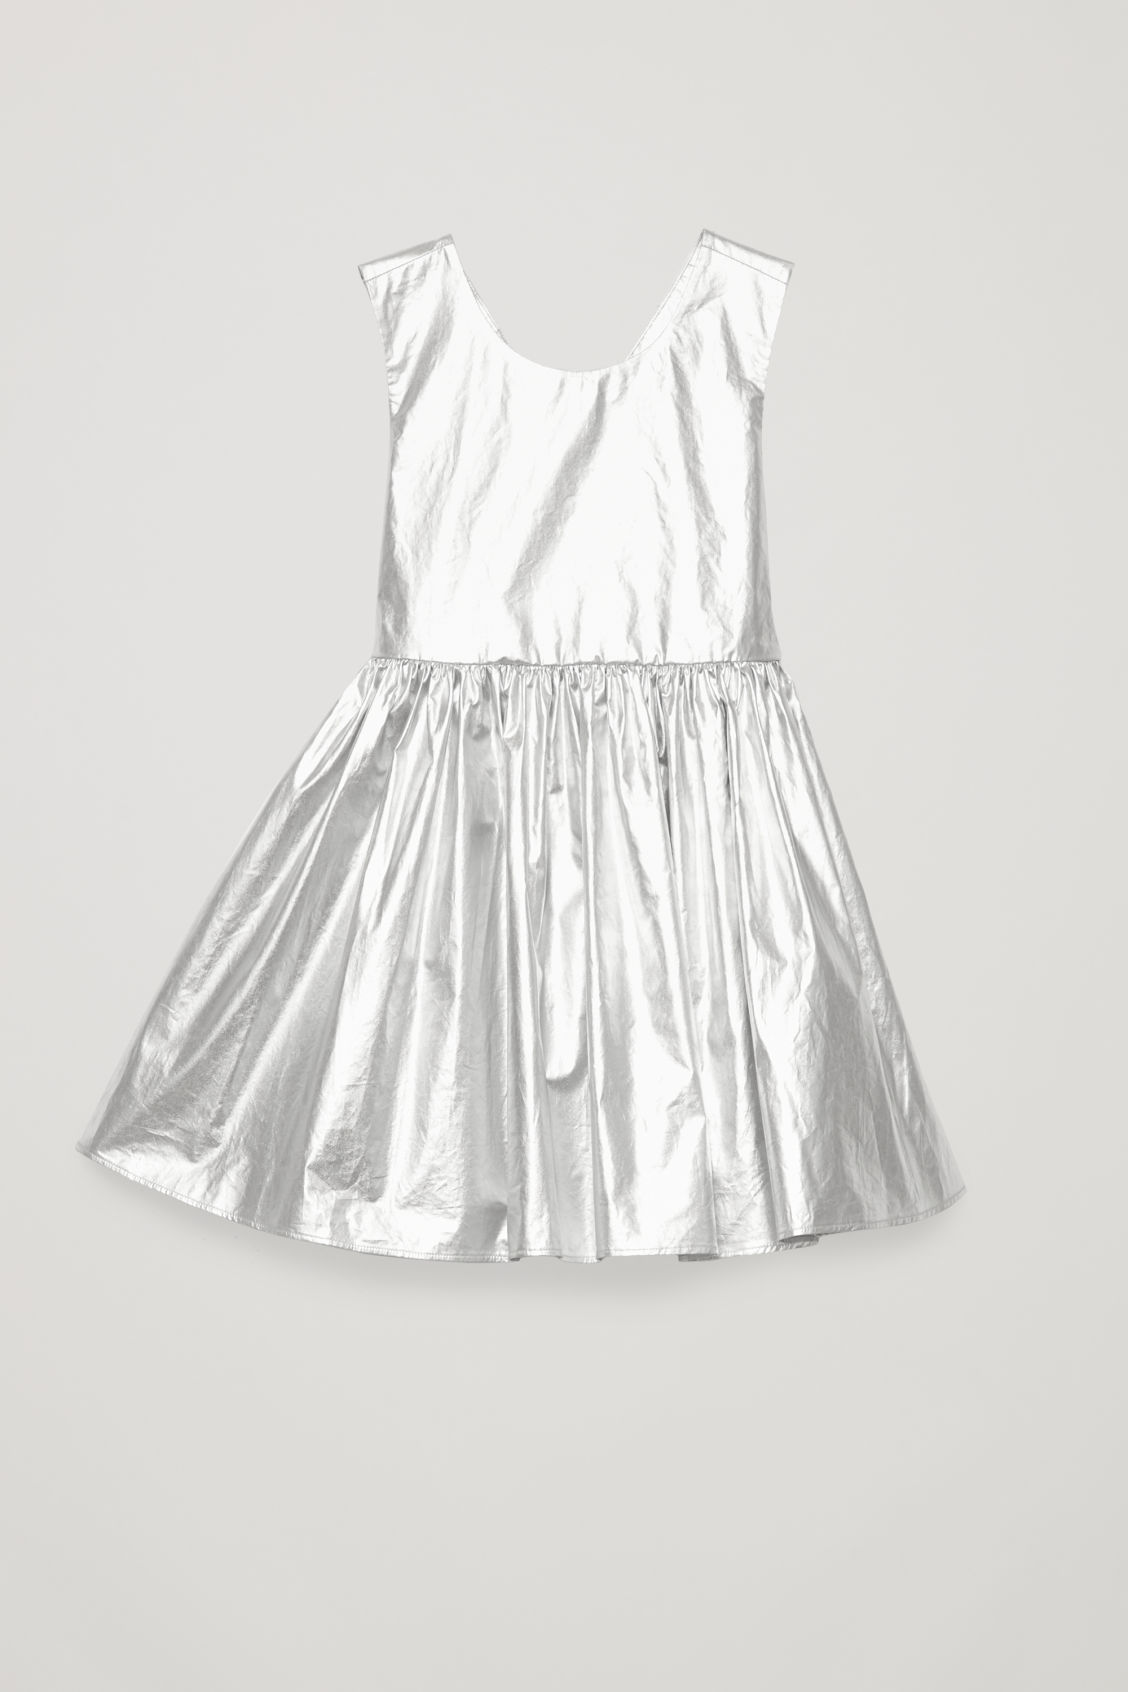 Detailed image of Cos metallic dress in grey